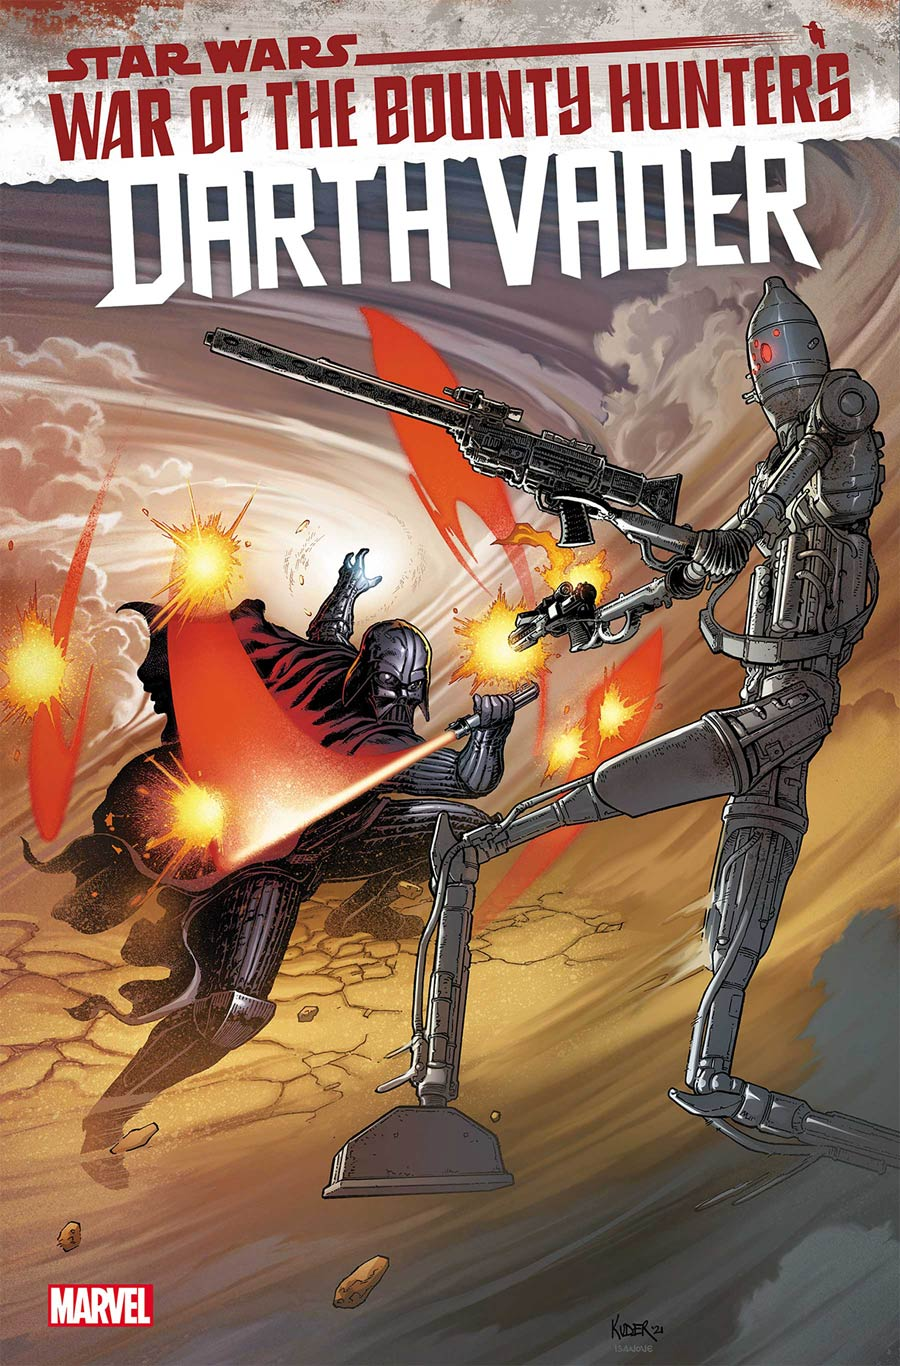 Star Wars Darth Vader #13 Cover A Regular Aaron Kuder Cover (War Of The Bounty Hunters Tie-In)